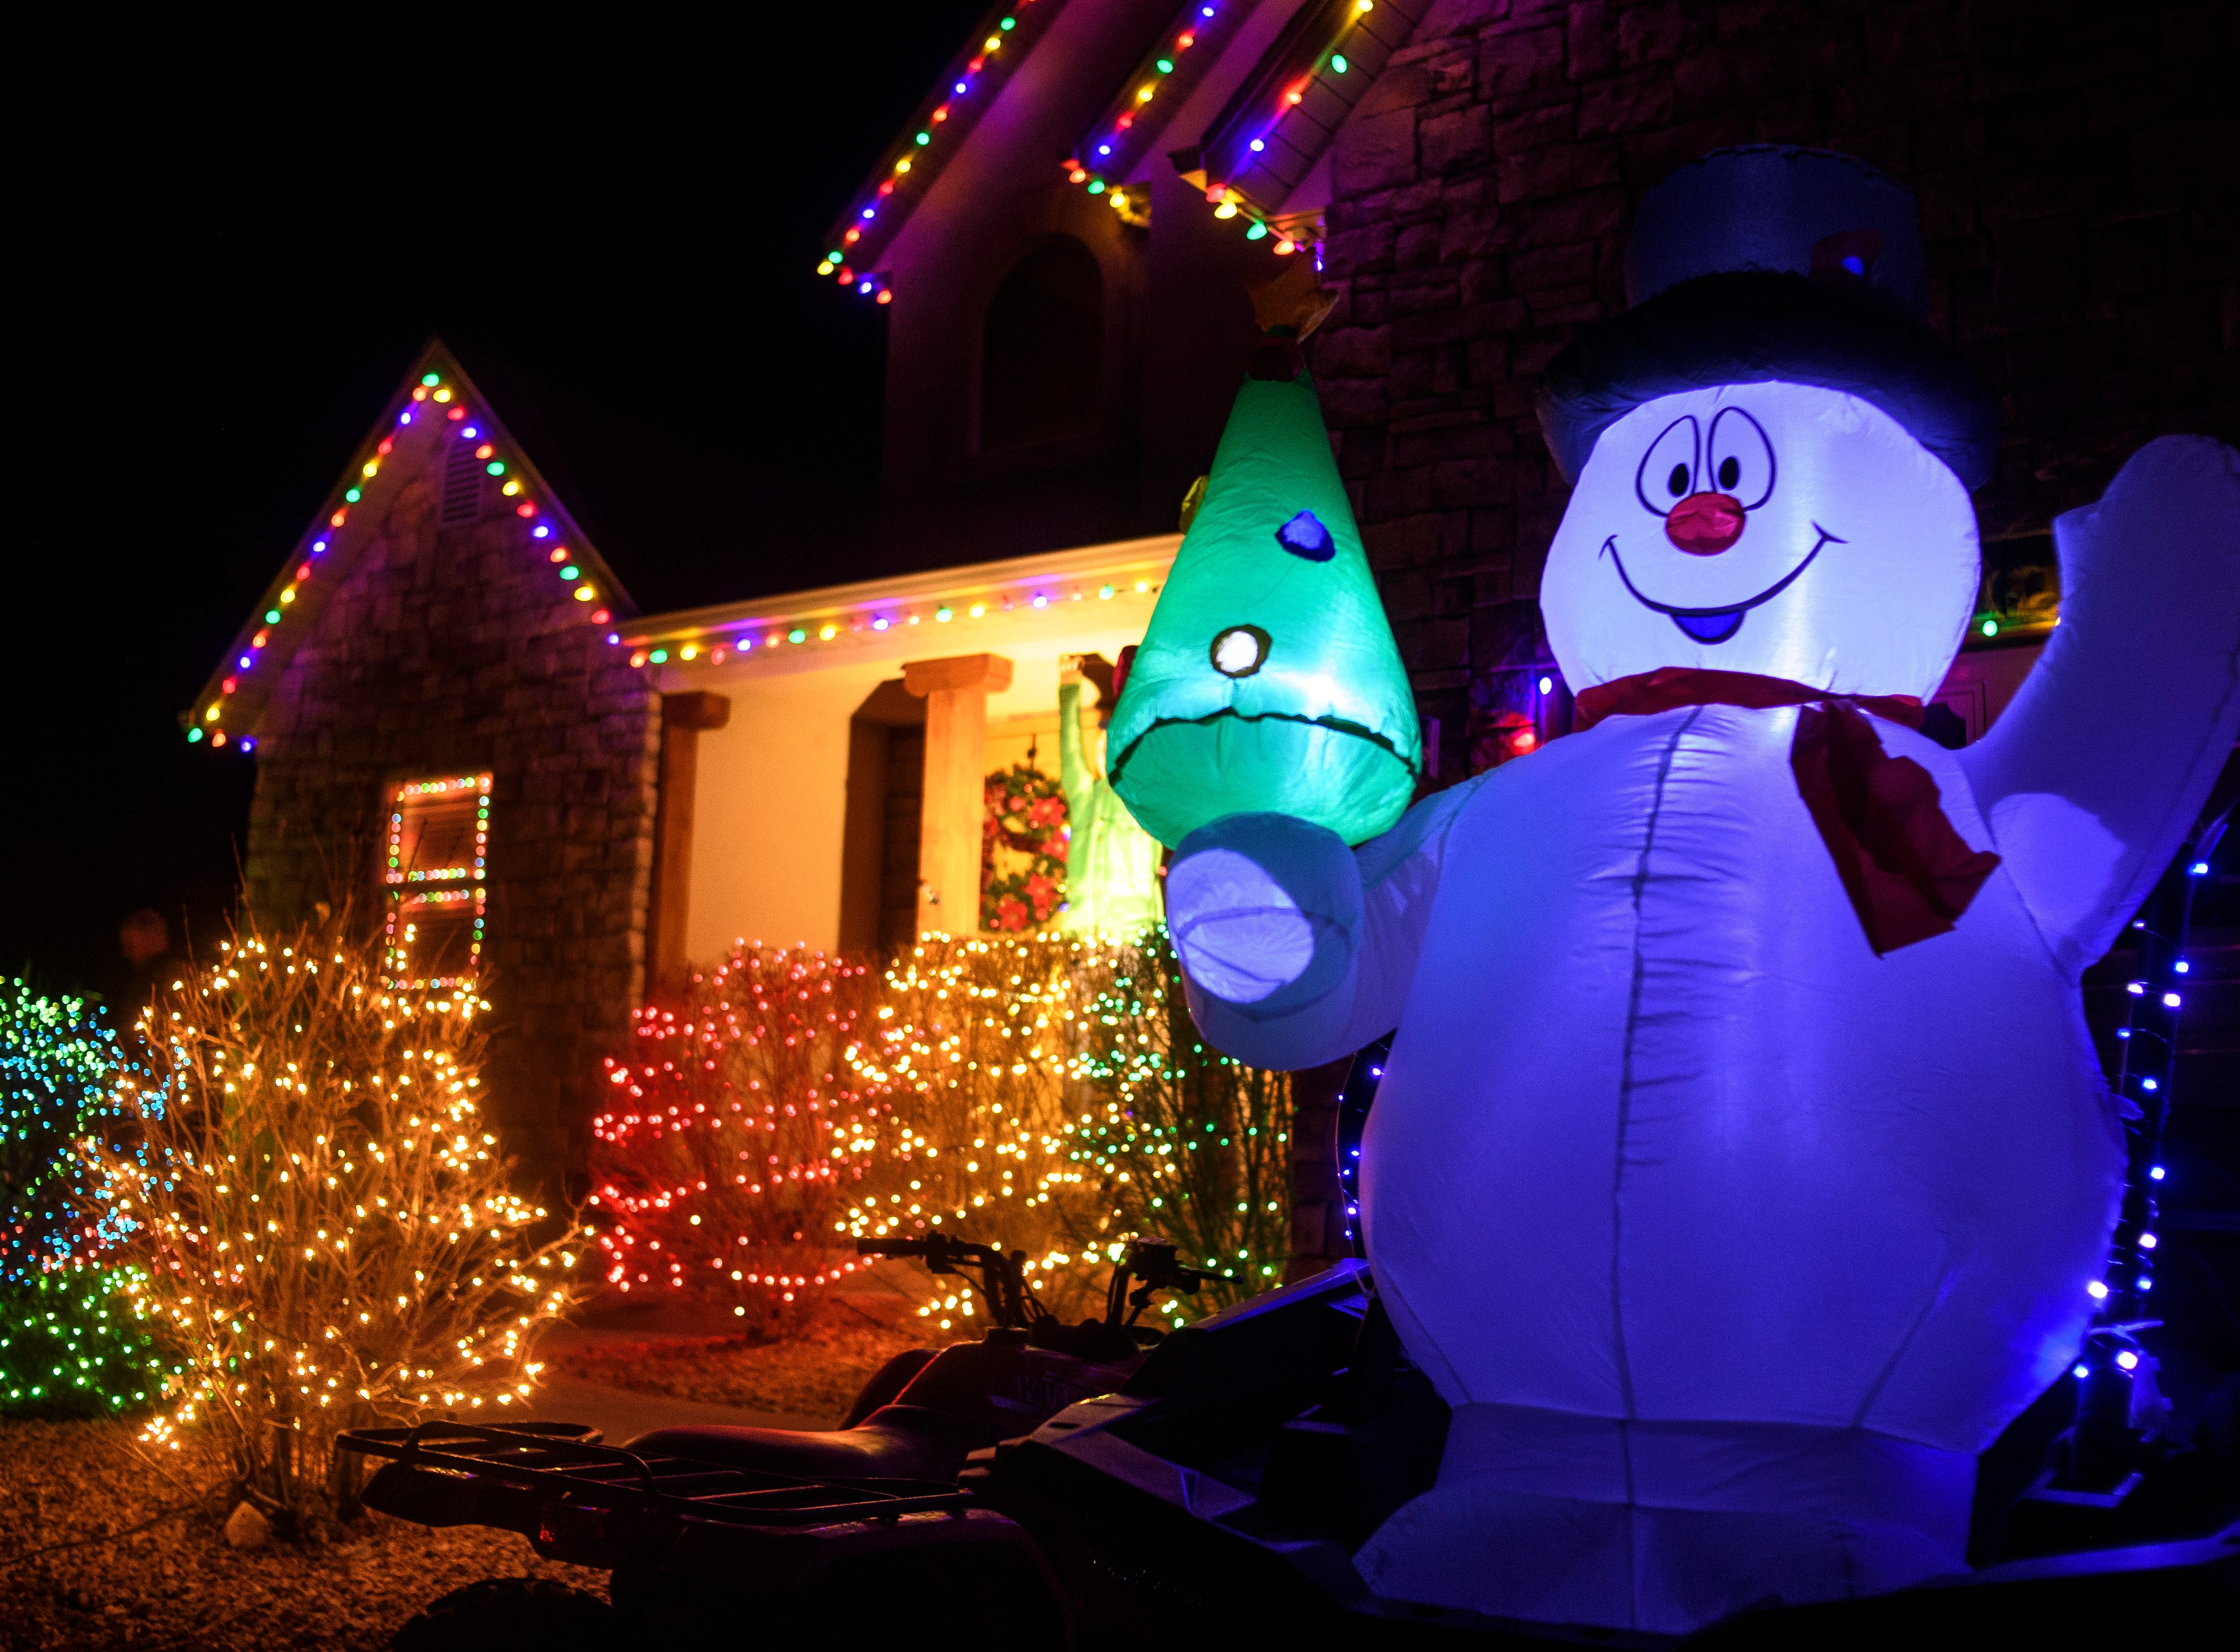 Visitors gather to view Christmas lights during the opening night of Christmas Lane in Cedar City Friday, November 23, 2018. The lights will be on every night through New Year's Eve, and can be seen all along the Canyon Ridge neighborhood.